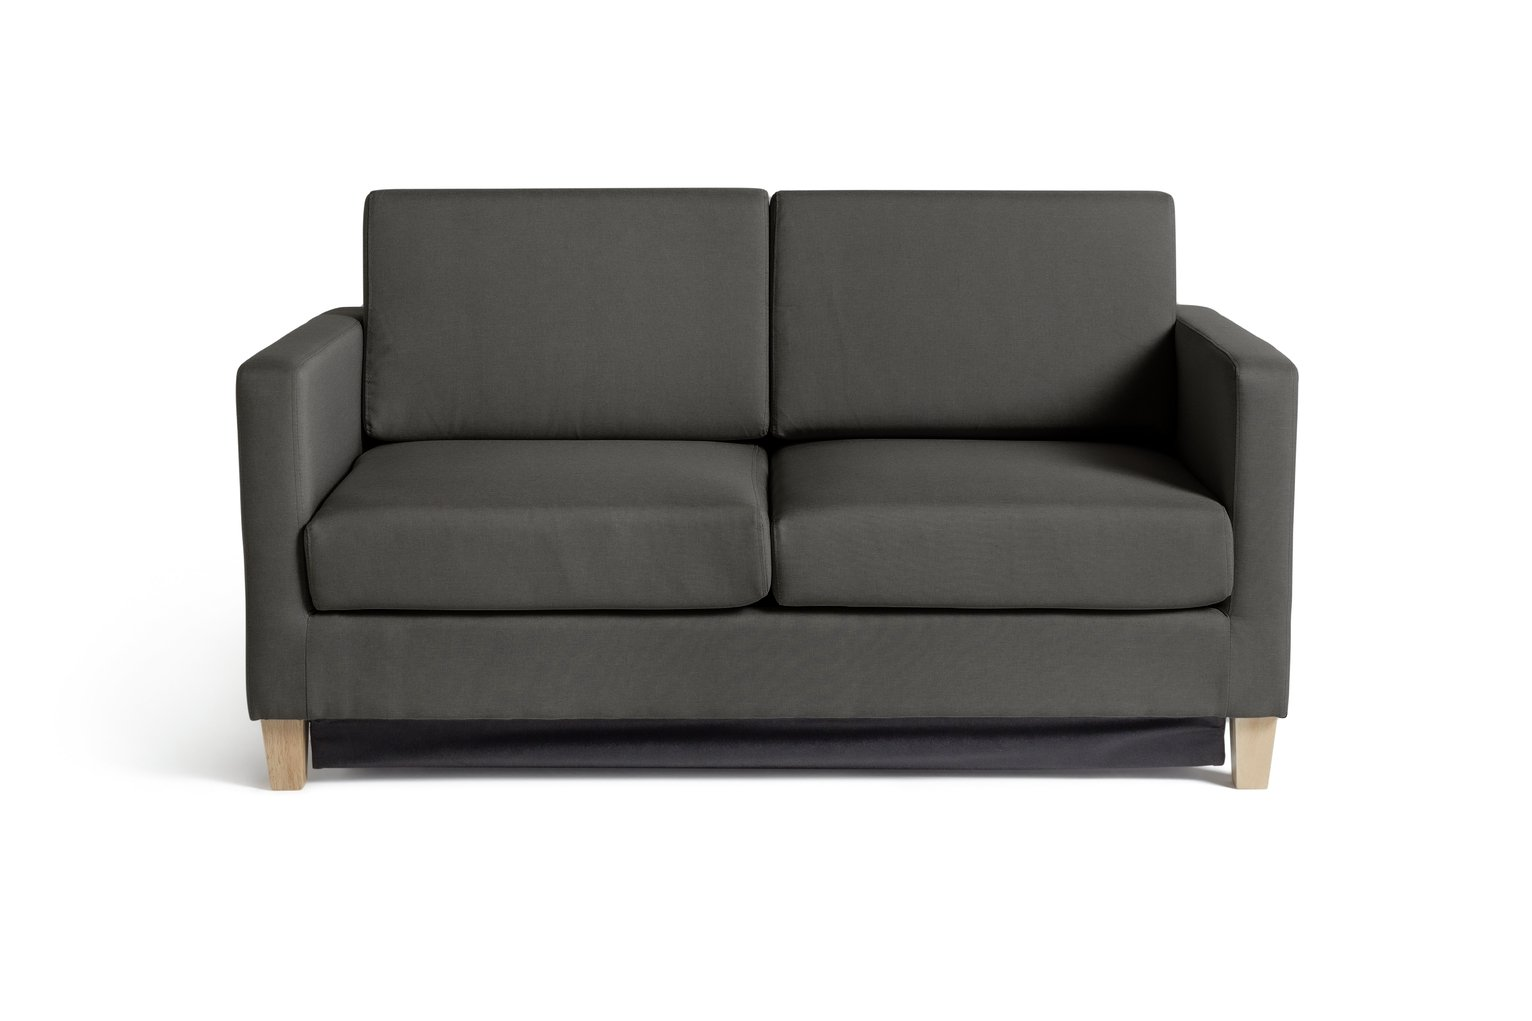 chair sofa beds how to remove damp smell from buy argos home rosie 2 seater fabric bed grey